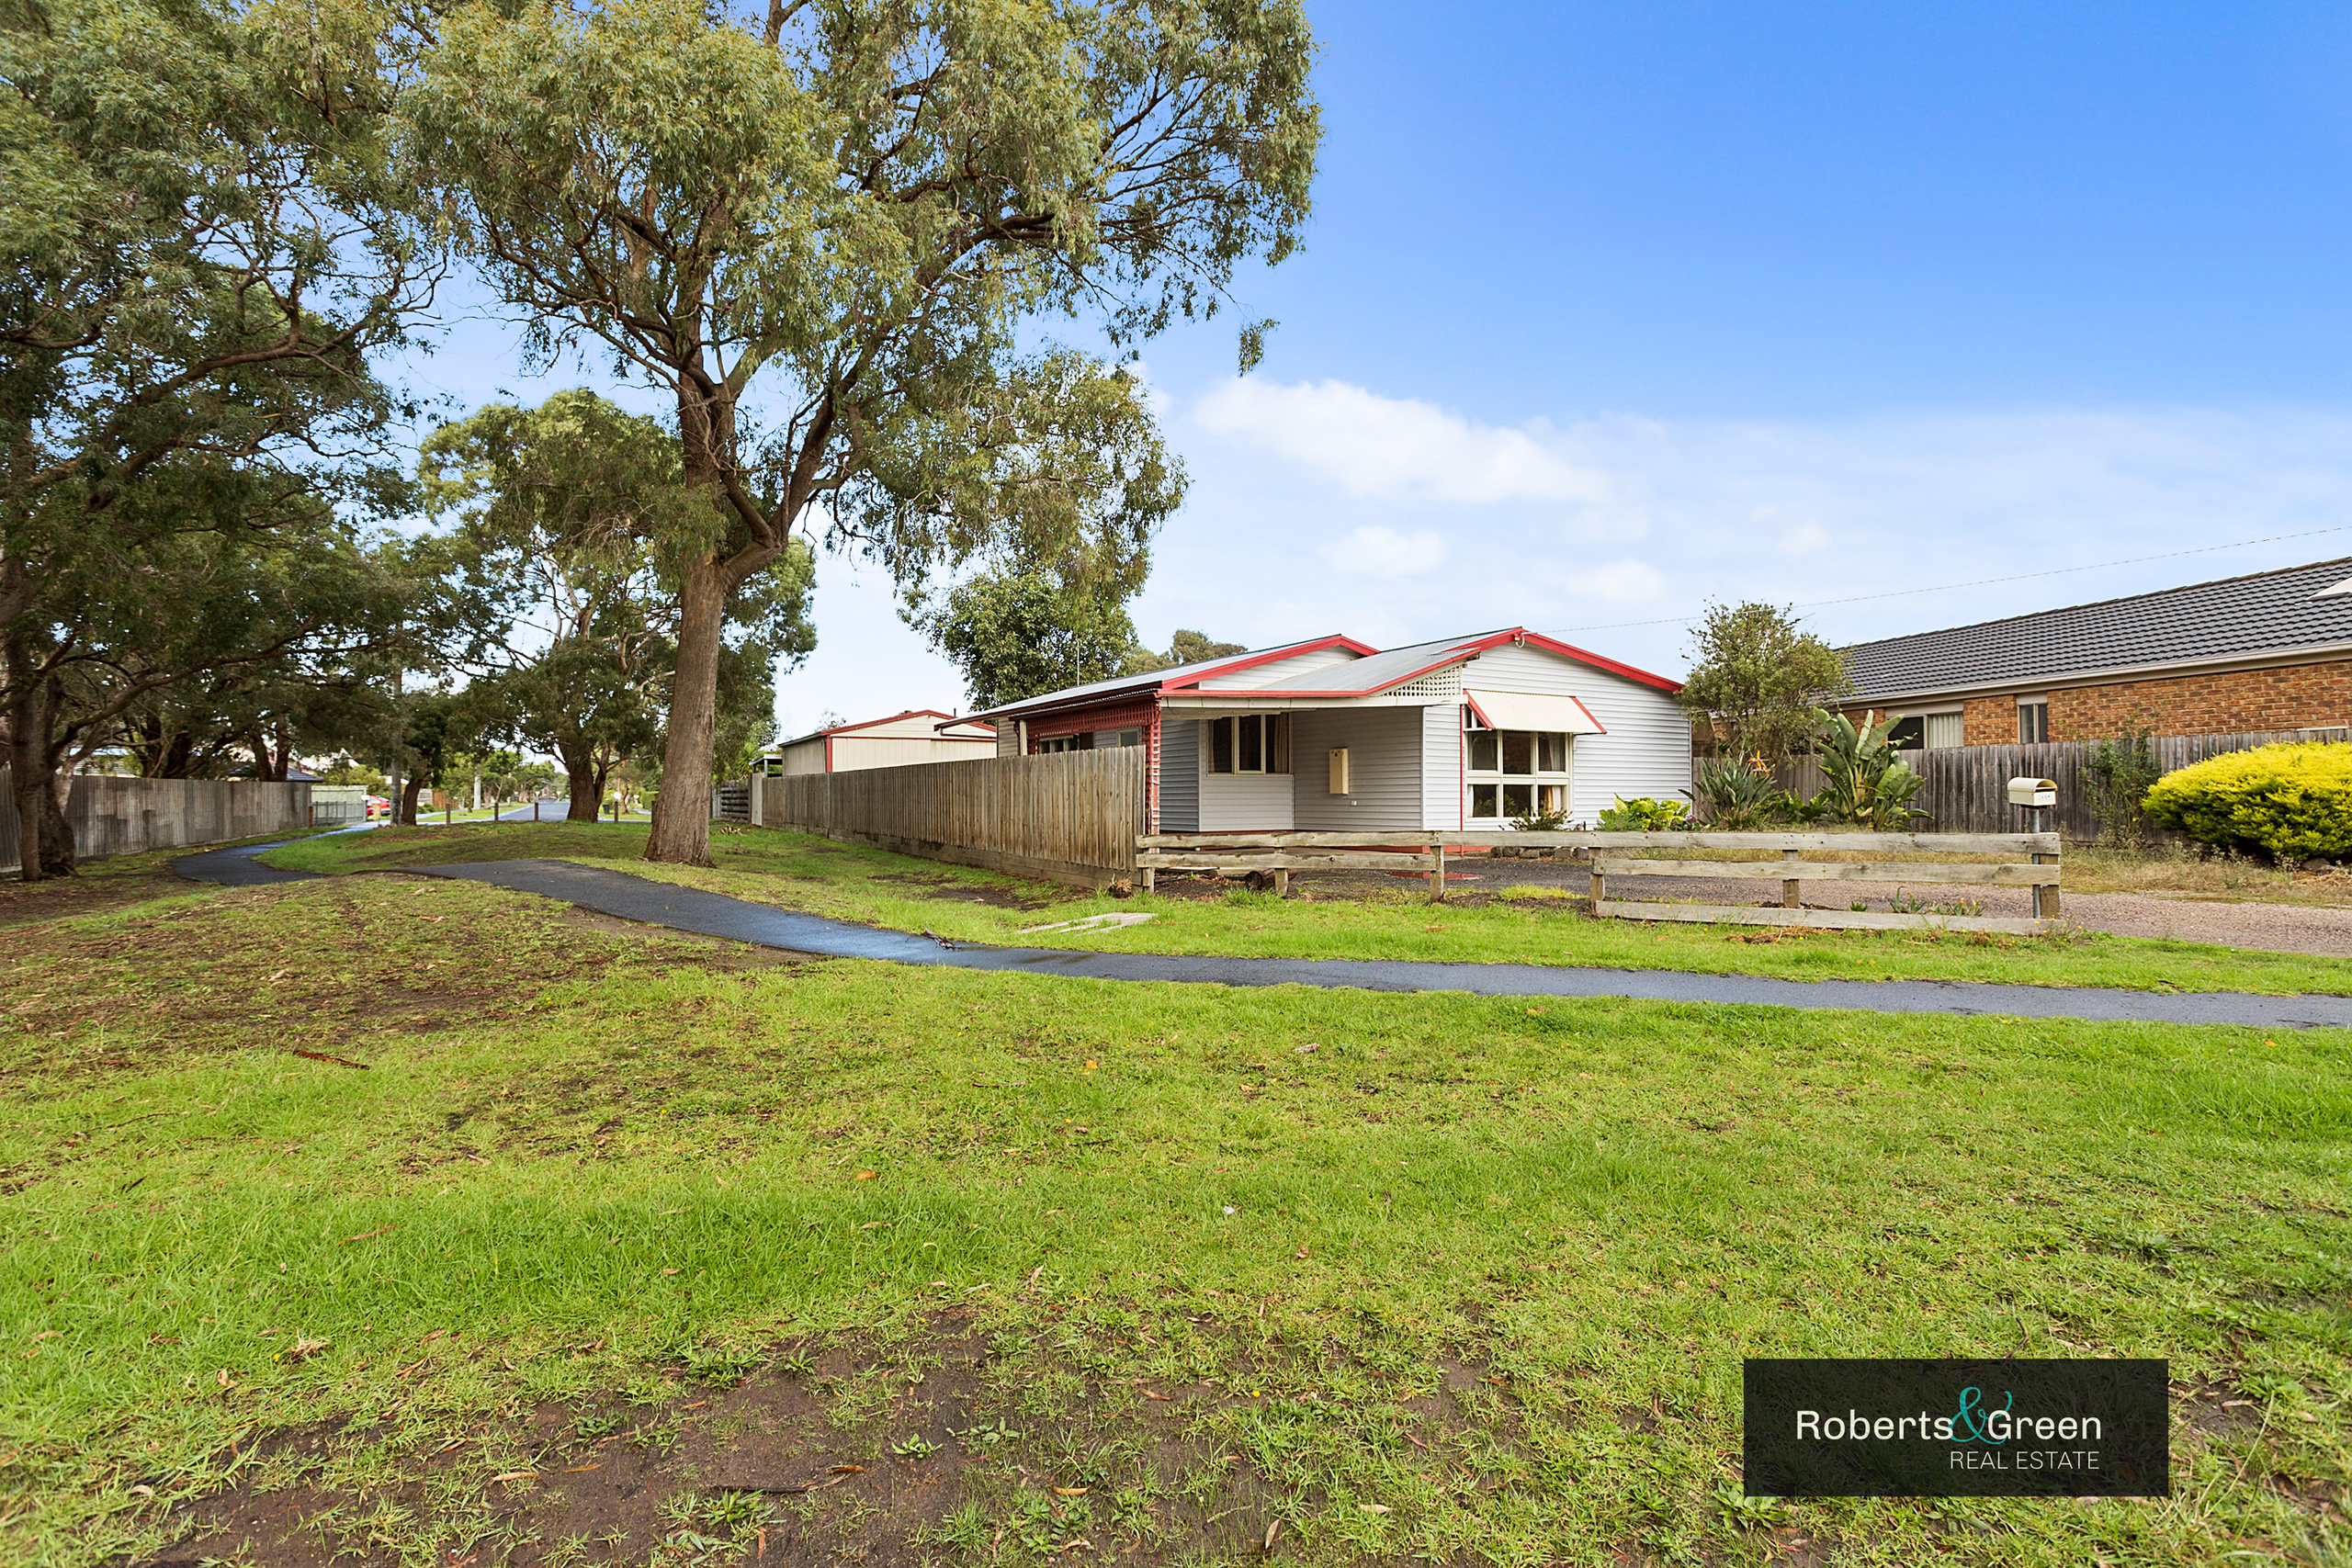 Homes for sale crib point vic - Homes For Sale Crib Point Vic 25